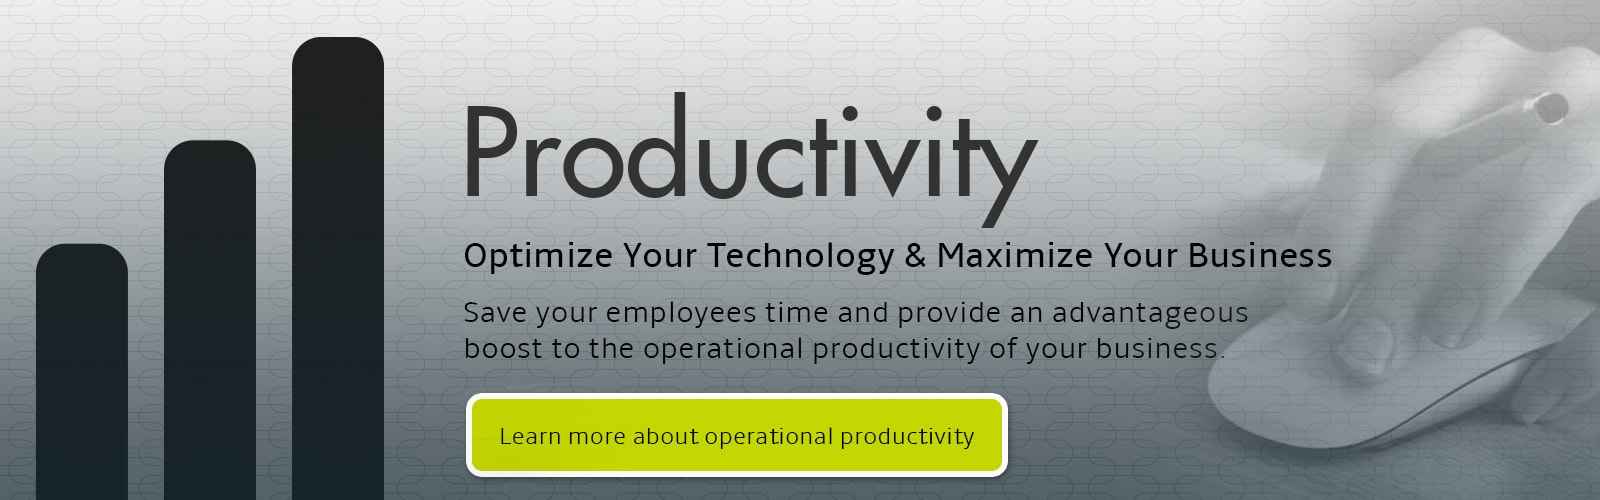 Optimize your technology and maximize your business